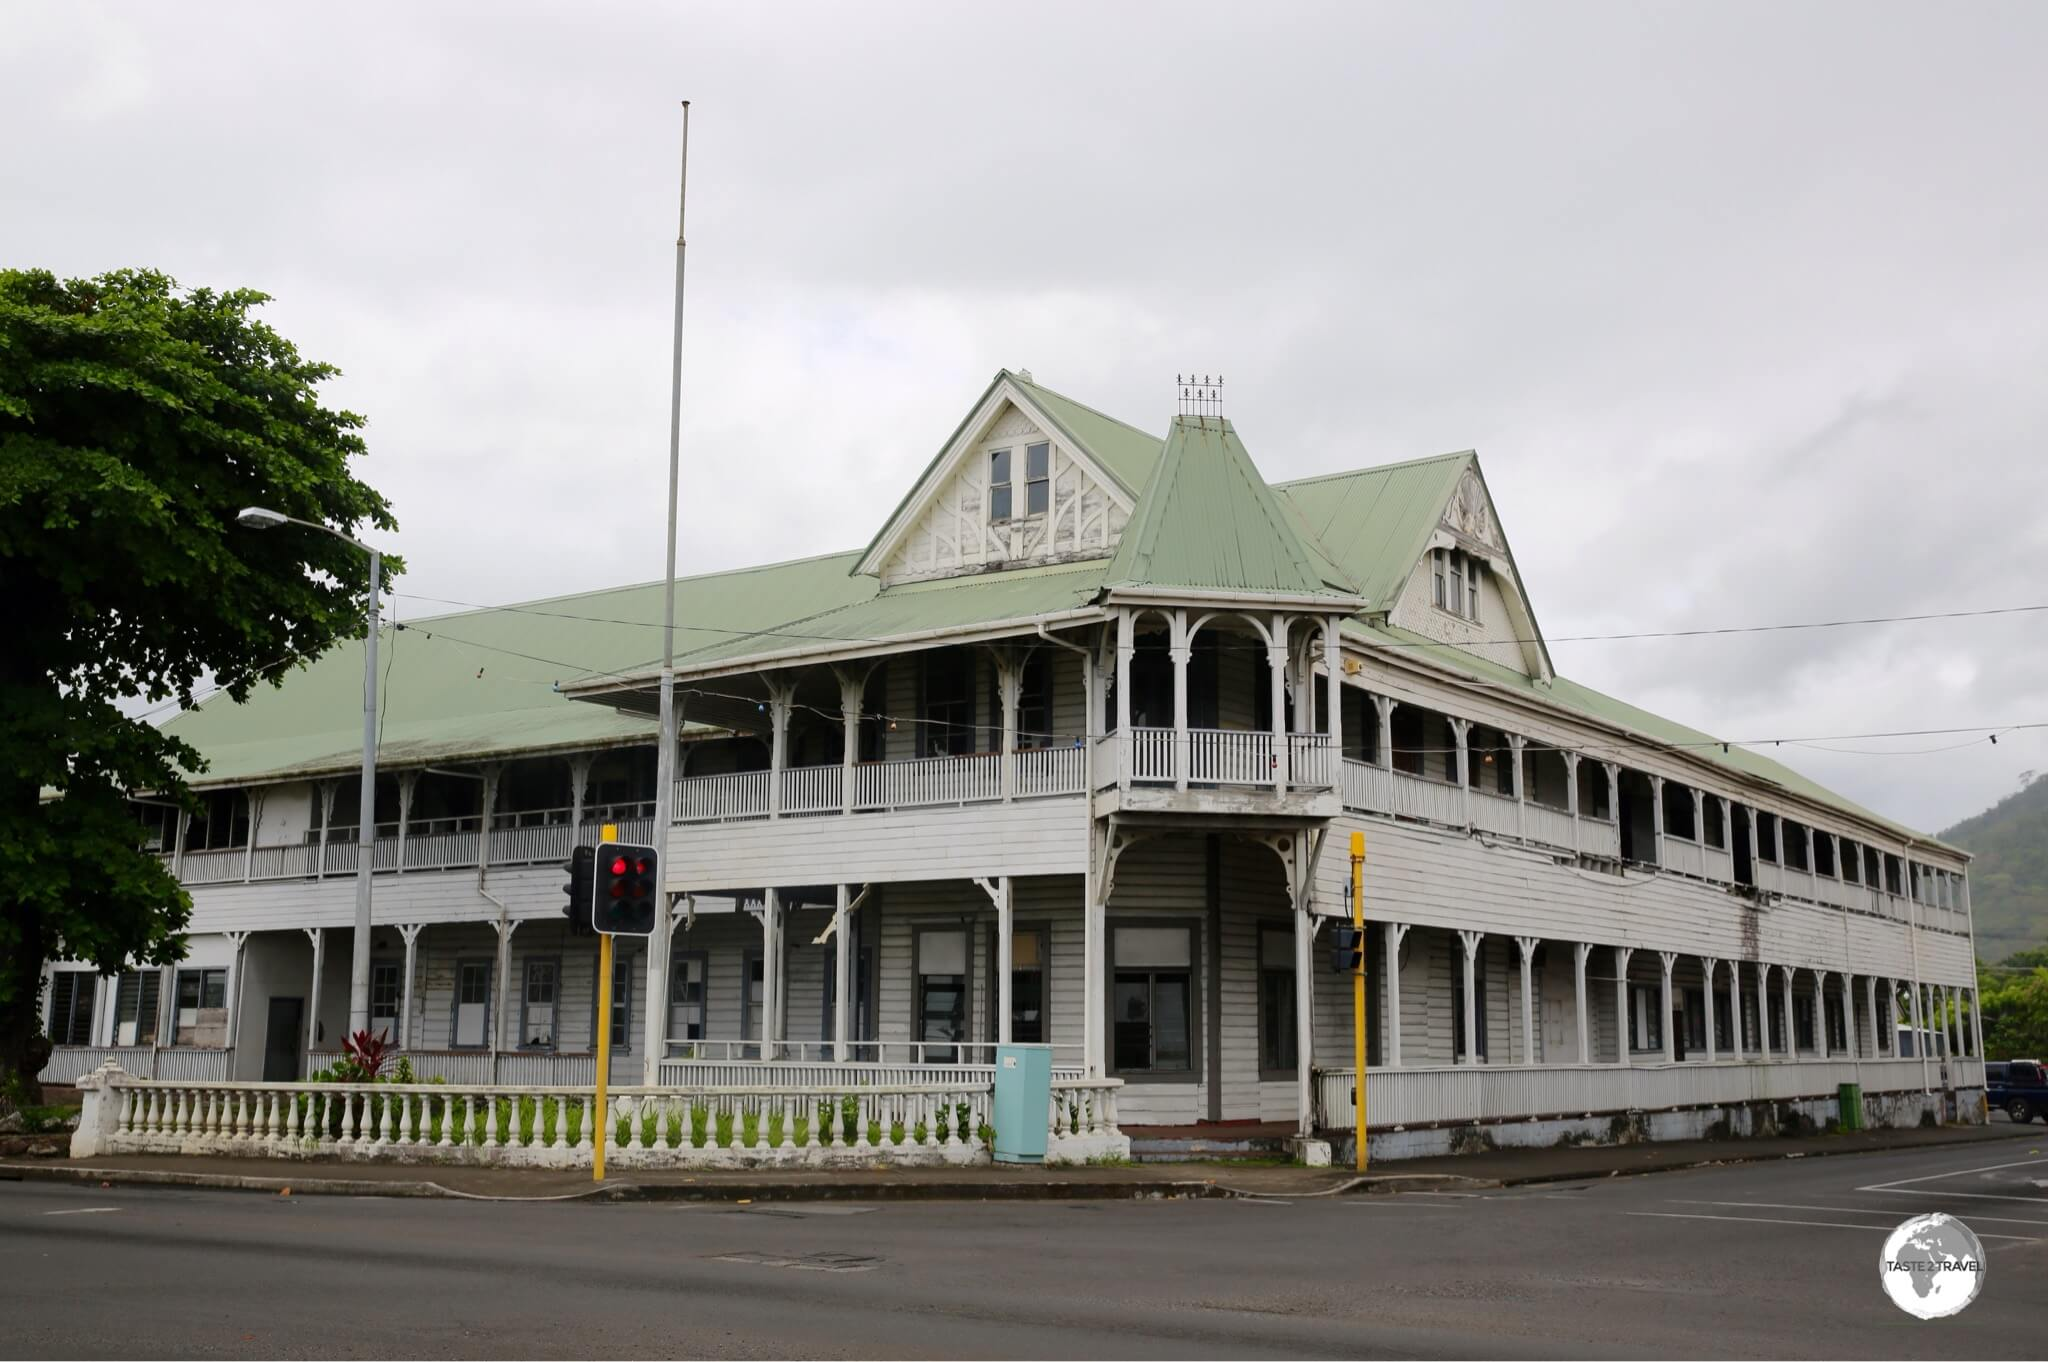 One of the last vestiges of the German Colonial era – the Old German Courthouse in Apia.